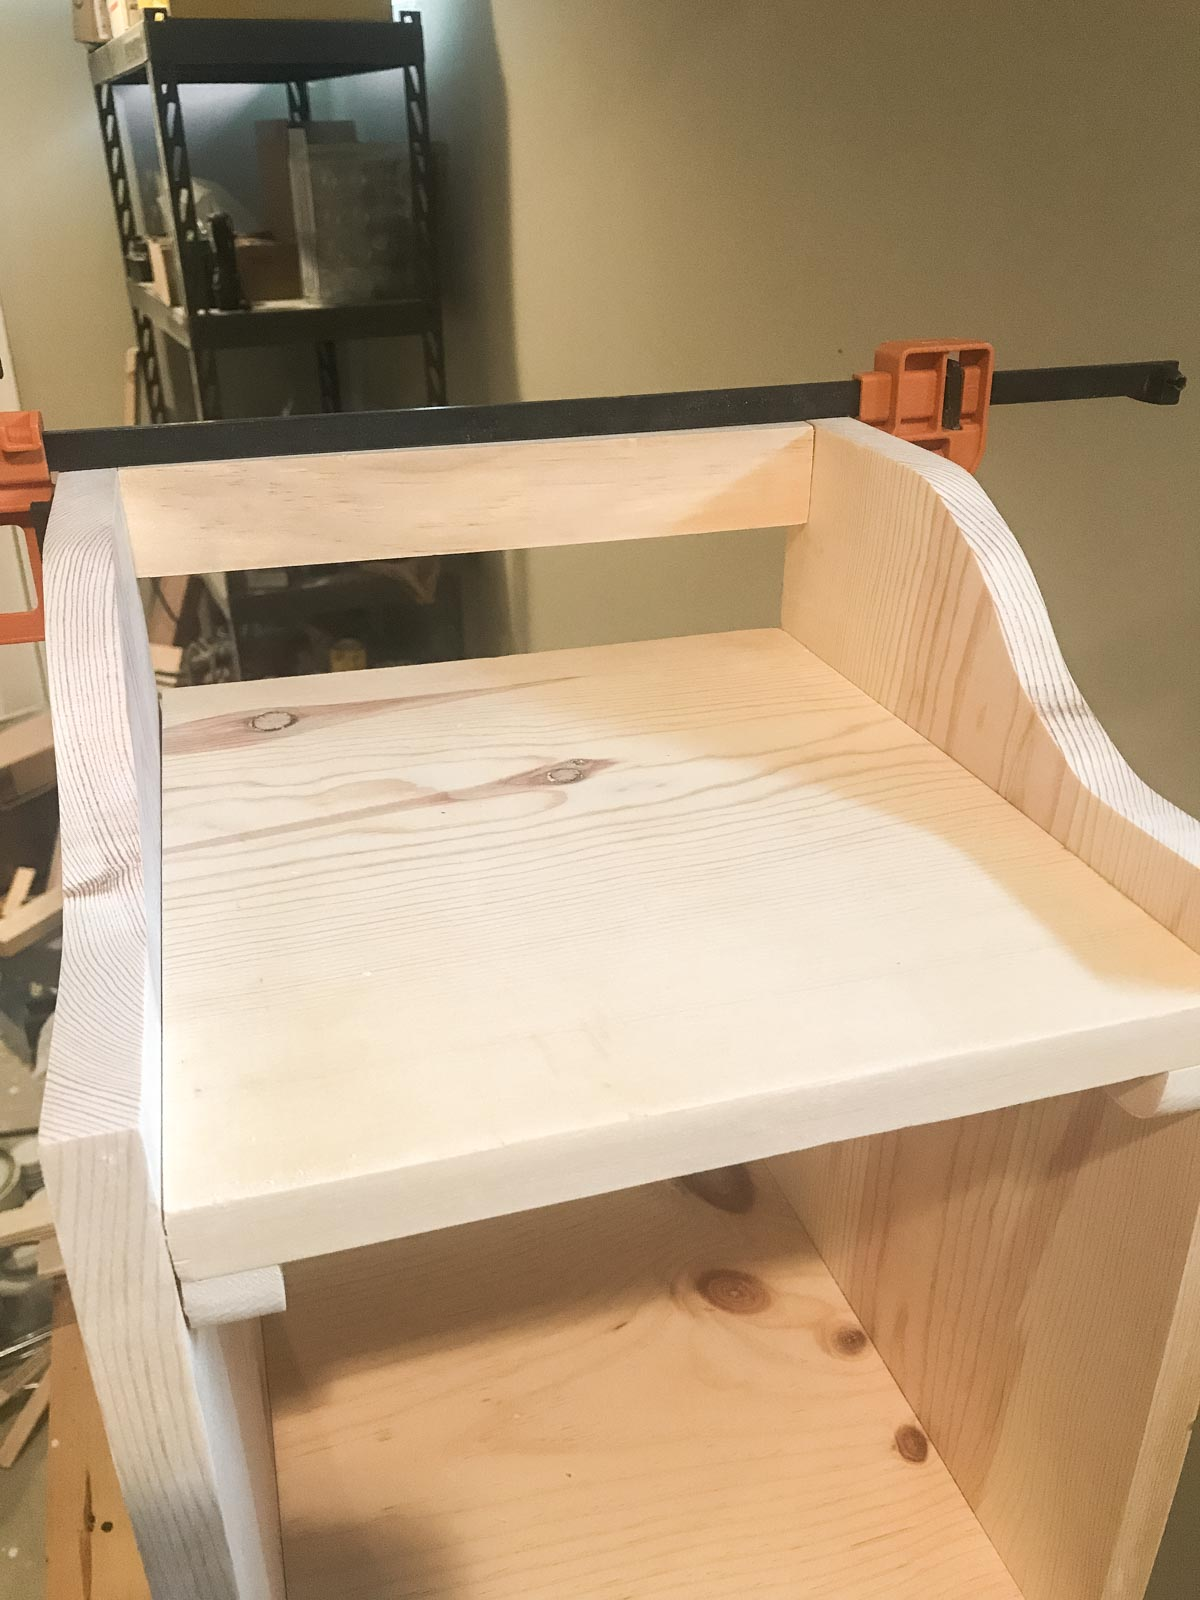 clamping back side rail to bookshelf